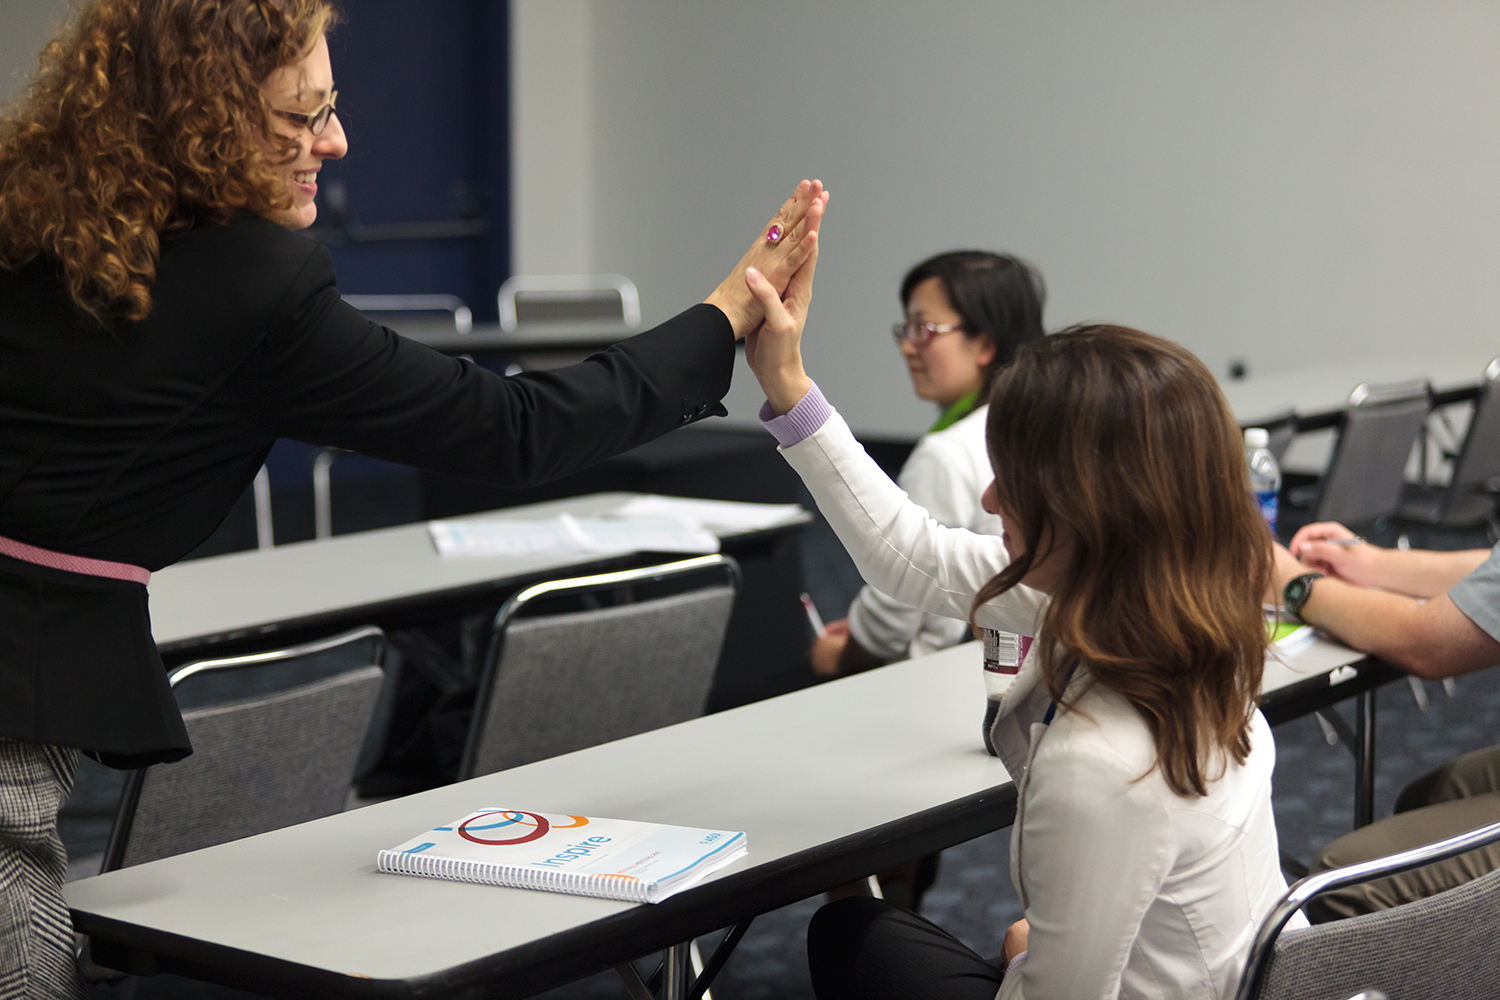 Teacher giving a student a high five in the classroom